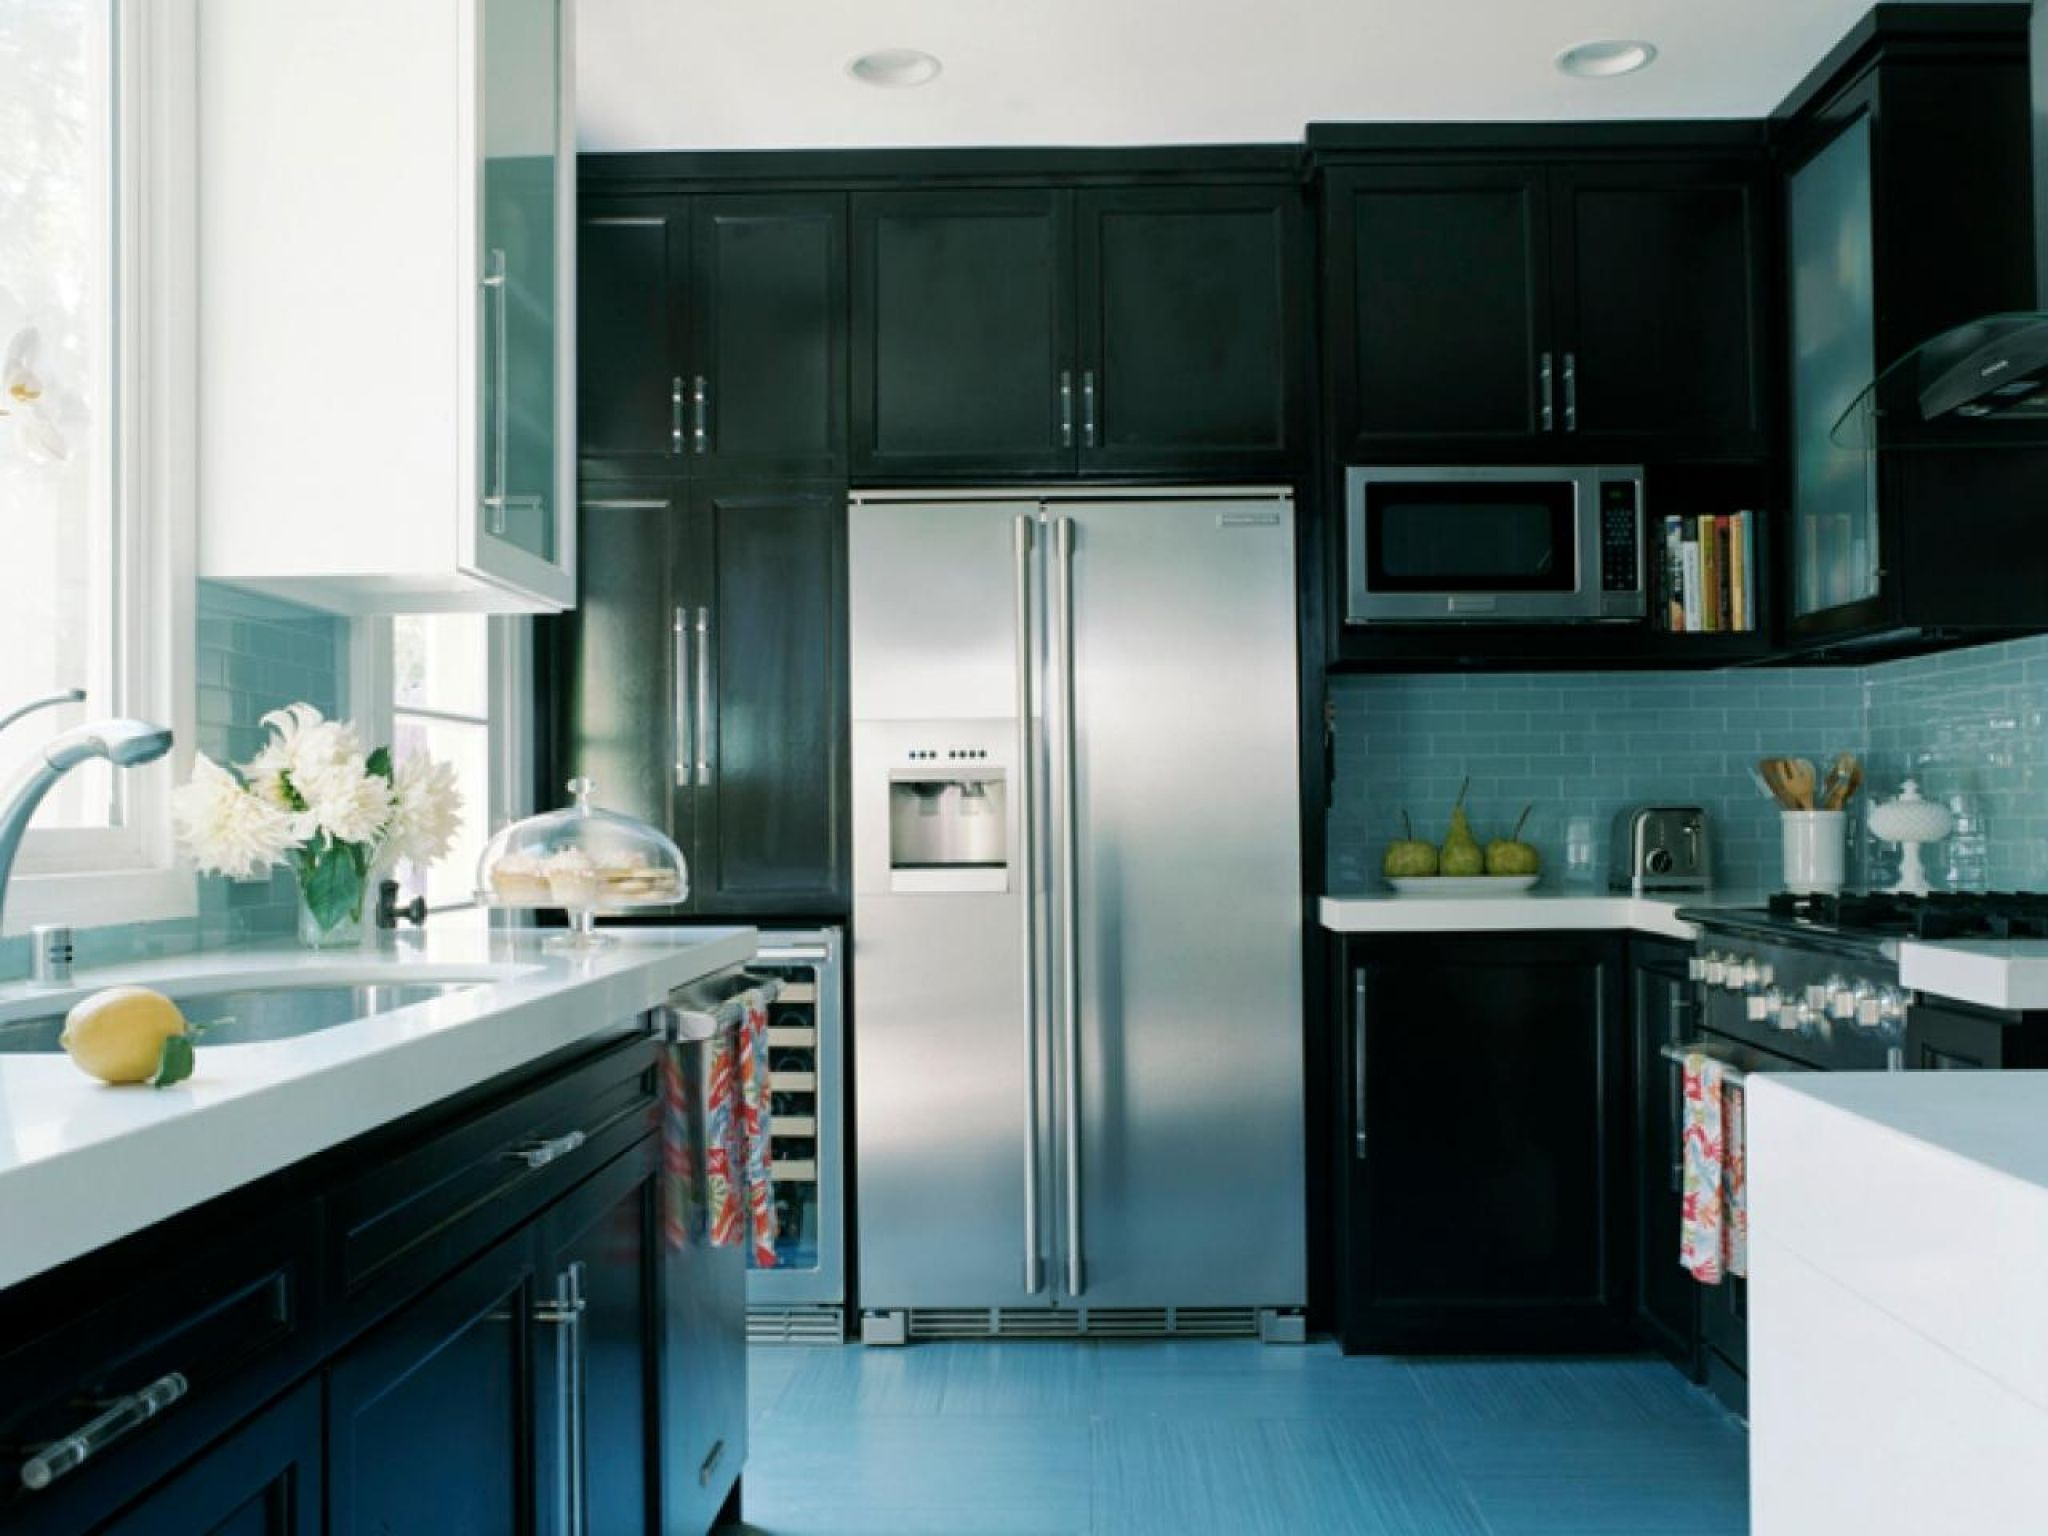 faux painting kitchen cabinets - design ideas for small kitchens ...